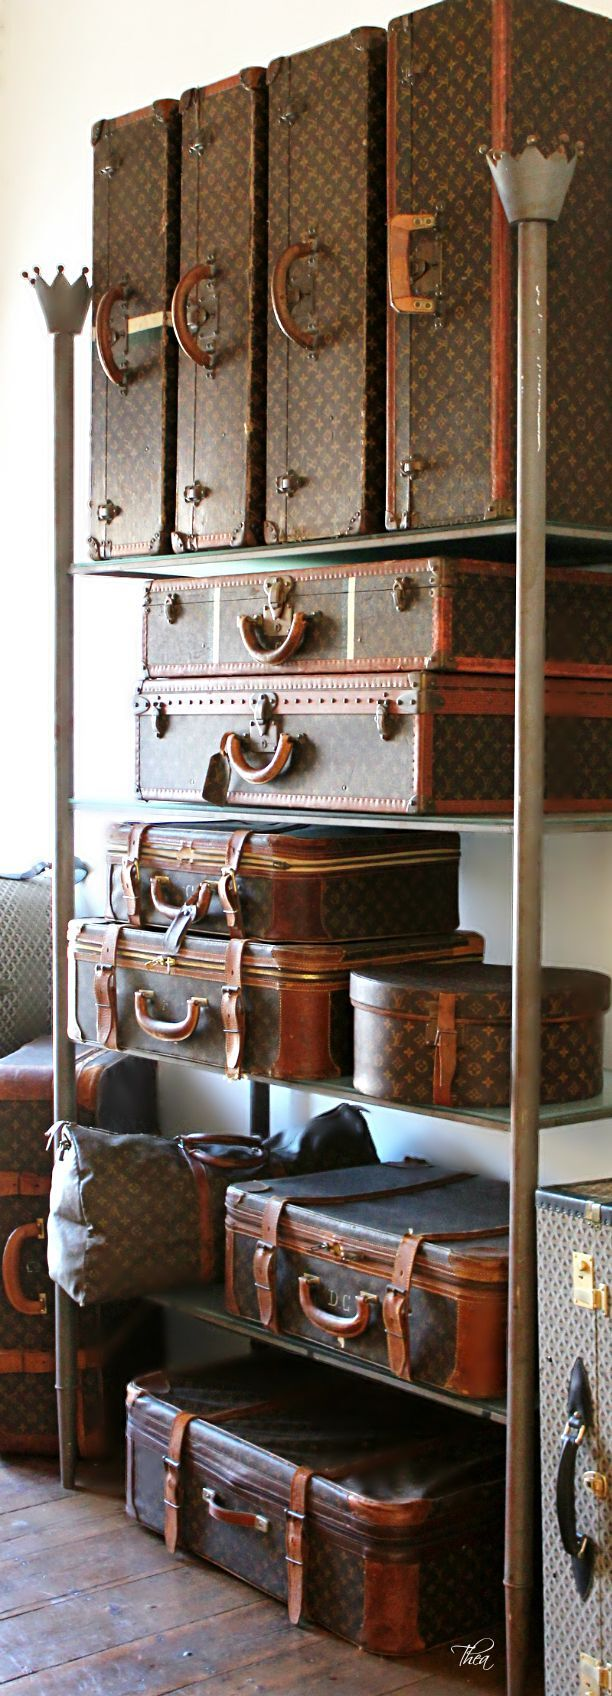 Luxury Louis Vuitton Luggage Collection   Supernatural Style